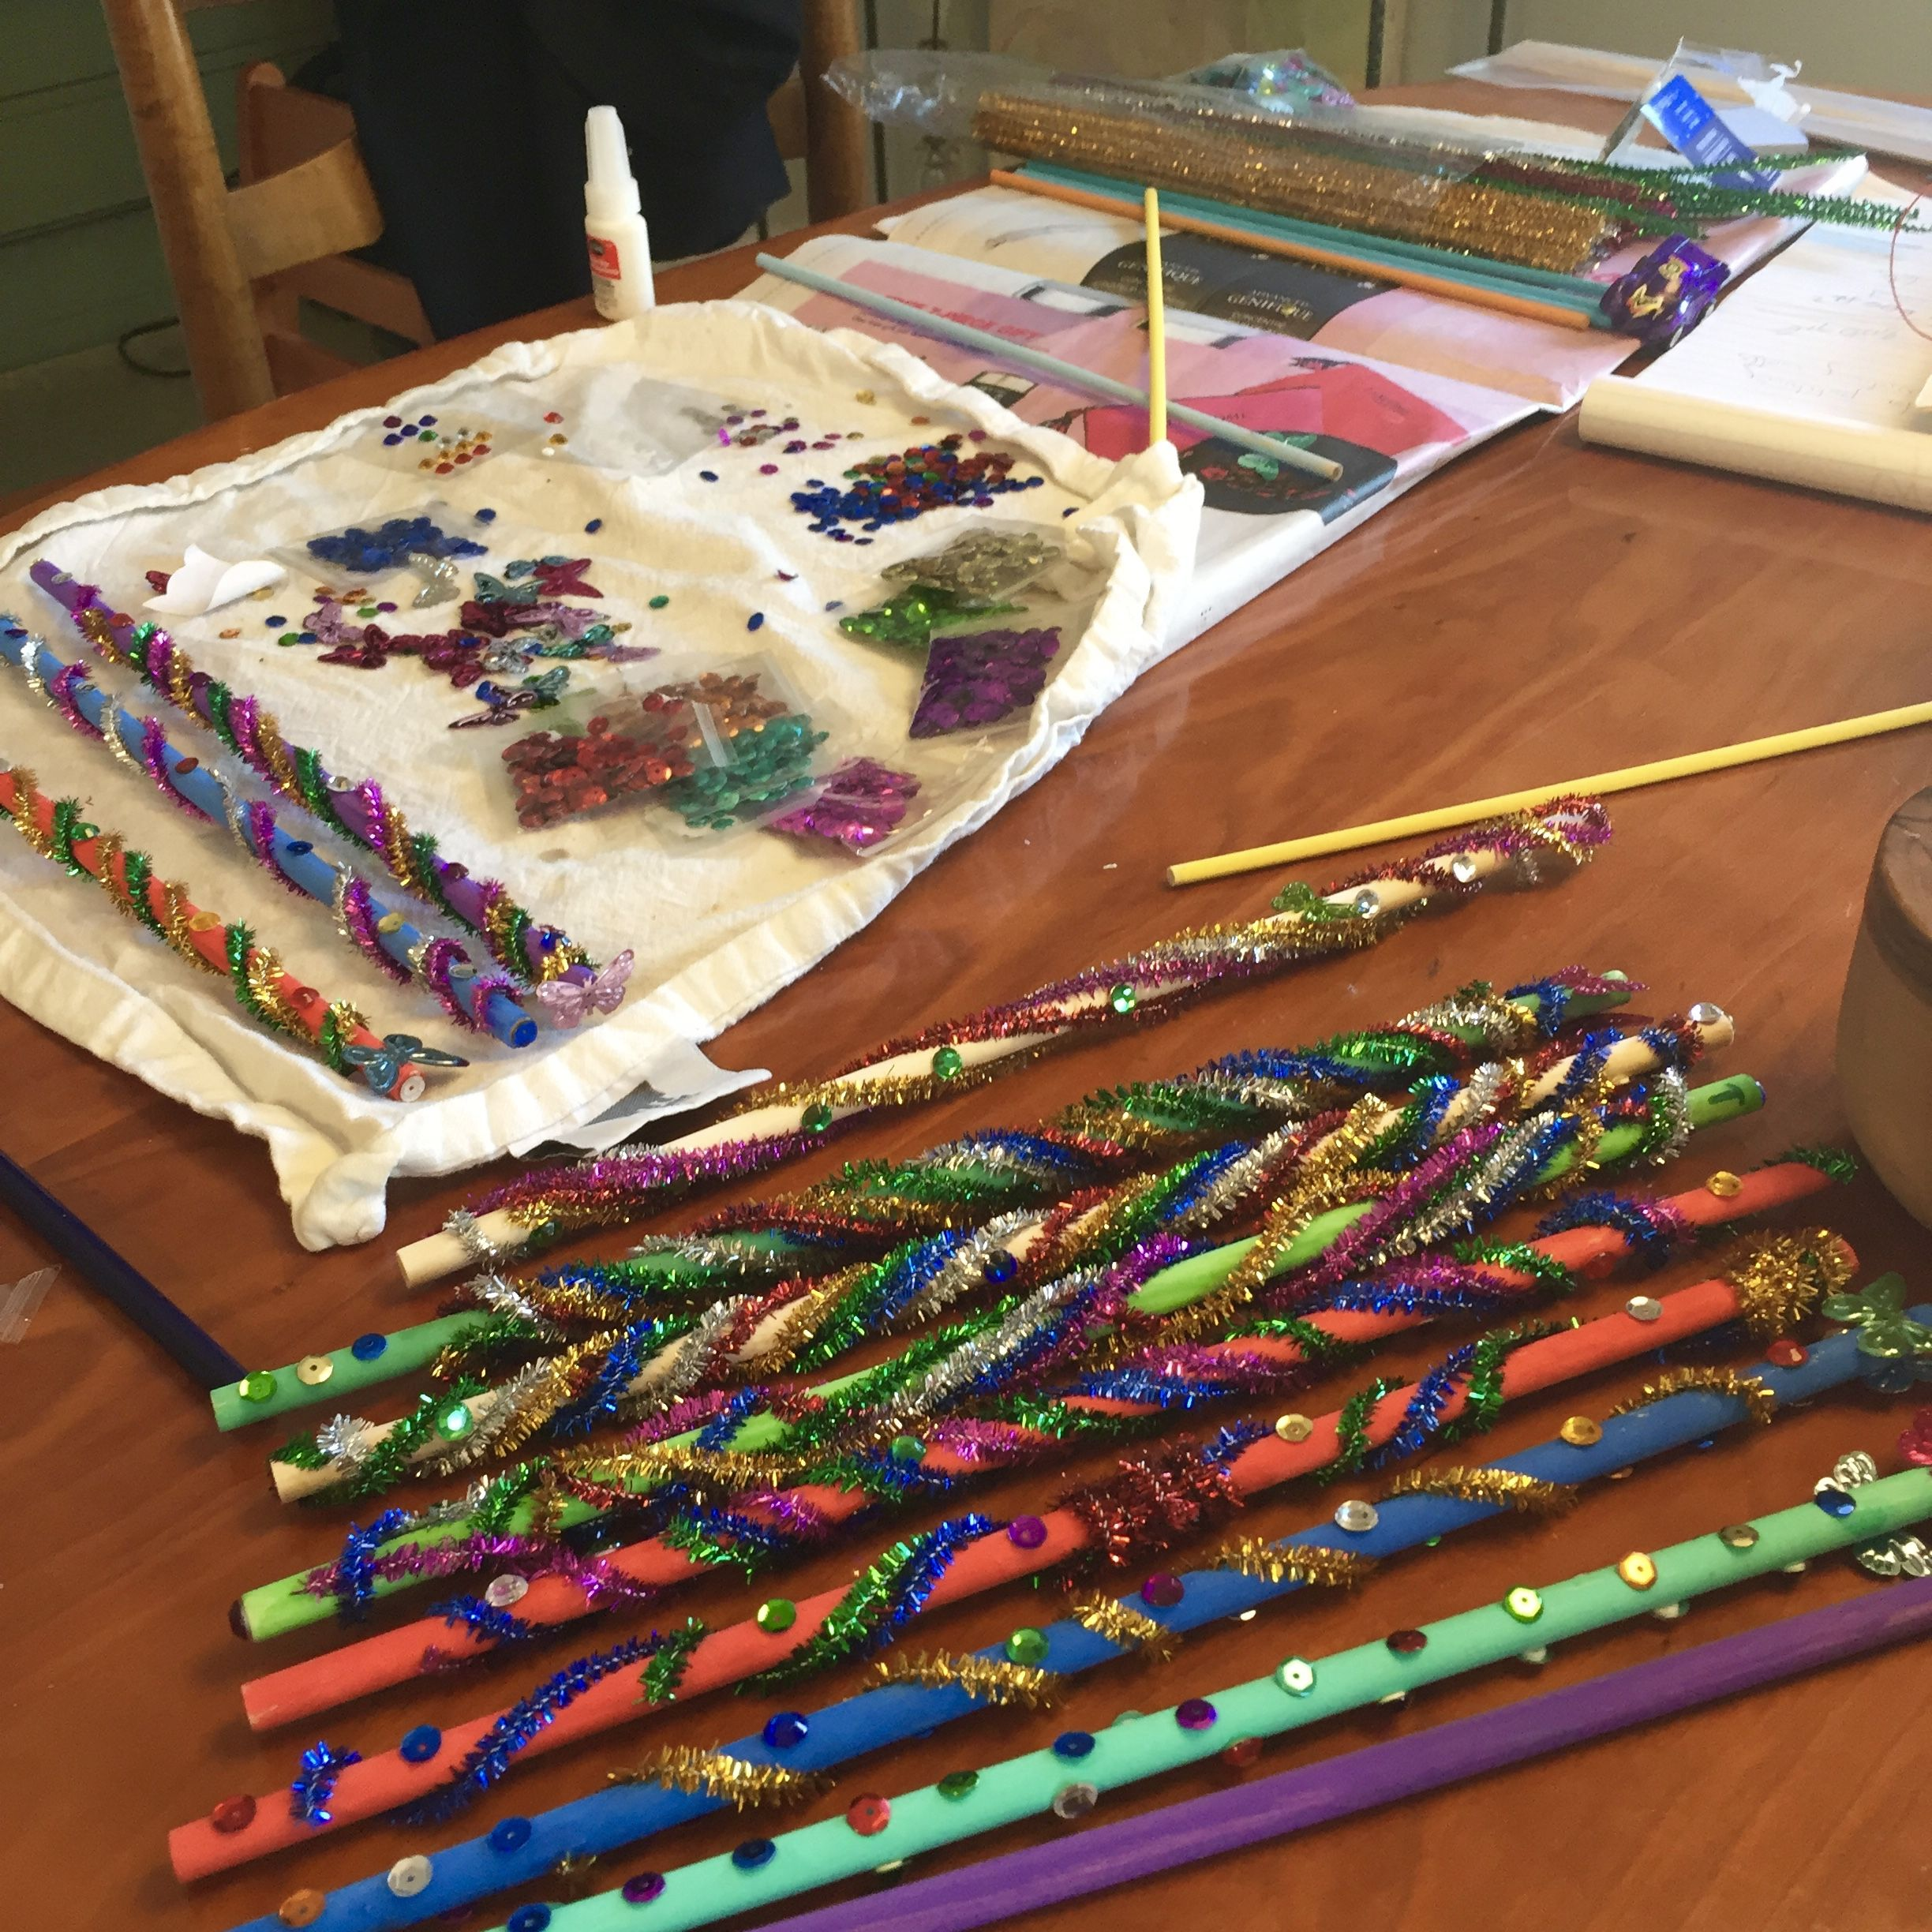 My Son And I Made Wands By Painting Dowels We Bought At Michaels Decorated Them With Pipe Cleaners Sparkly Stick Ons Used Super Glue